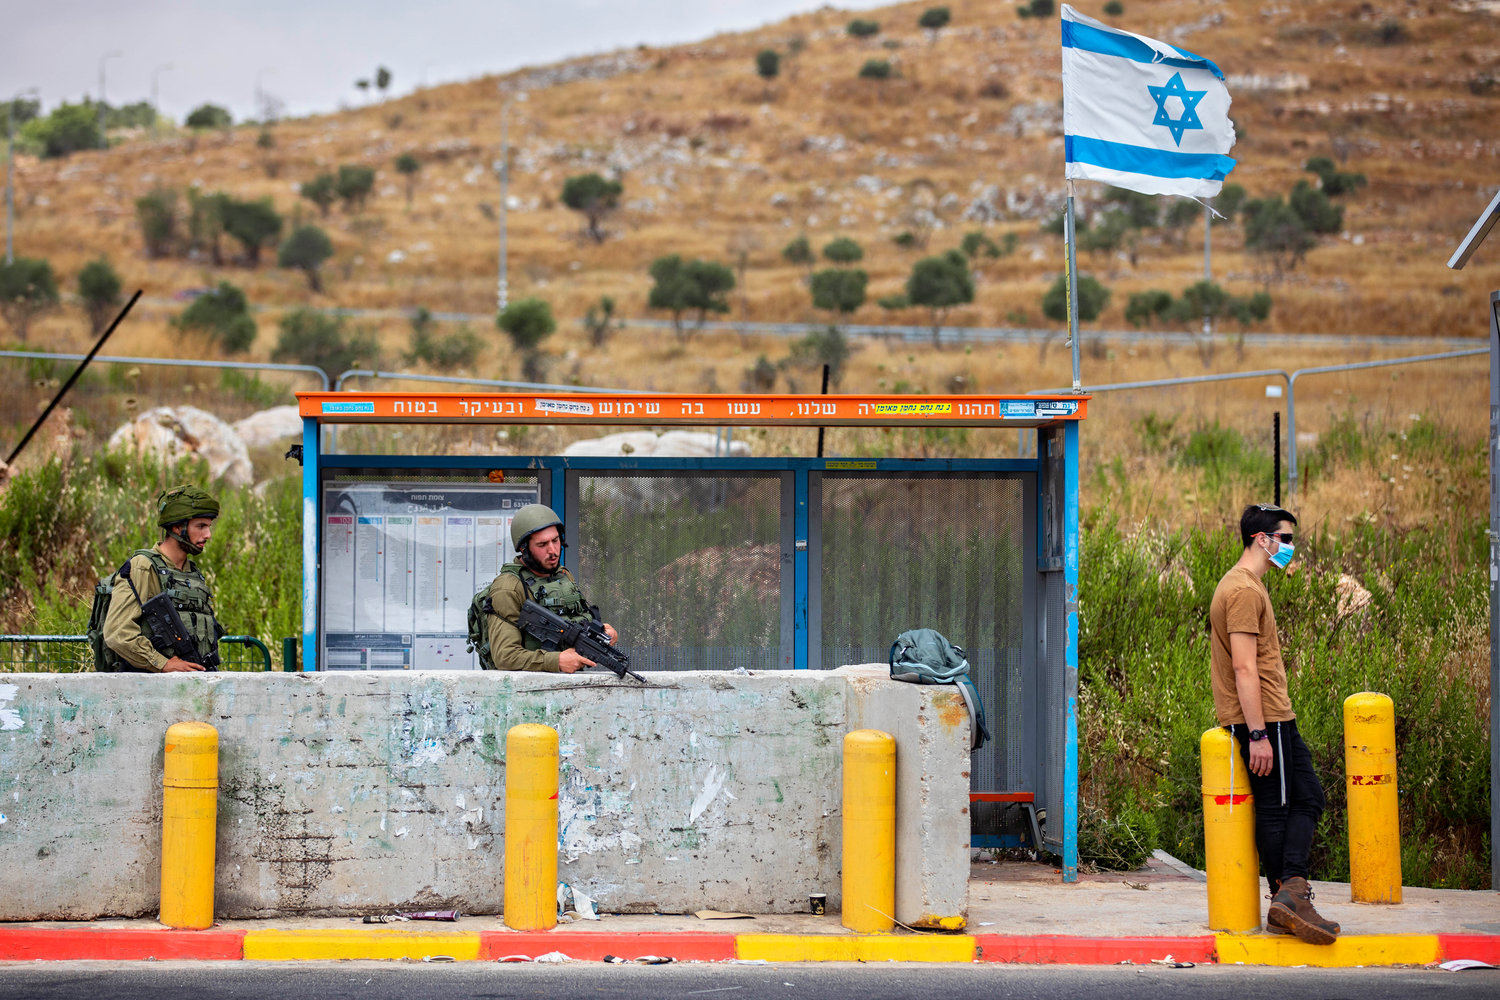 Israeli soldiers guard a bus station at the Tapuach junction next to the West Bank city of Nablus, Tuesday, June 30, 2020. Israeli Prime Minister Benjamin Netanyahu appears determined to carry out his pledge to begin annexing parts of the occupied West Bank, possibly as soon as Wednesday. (AP Photo/Oded Balilty)